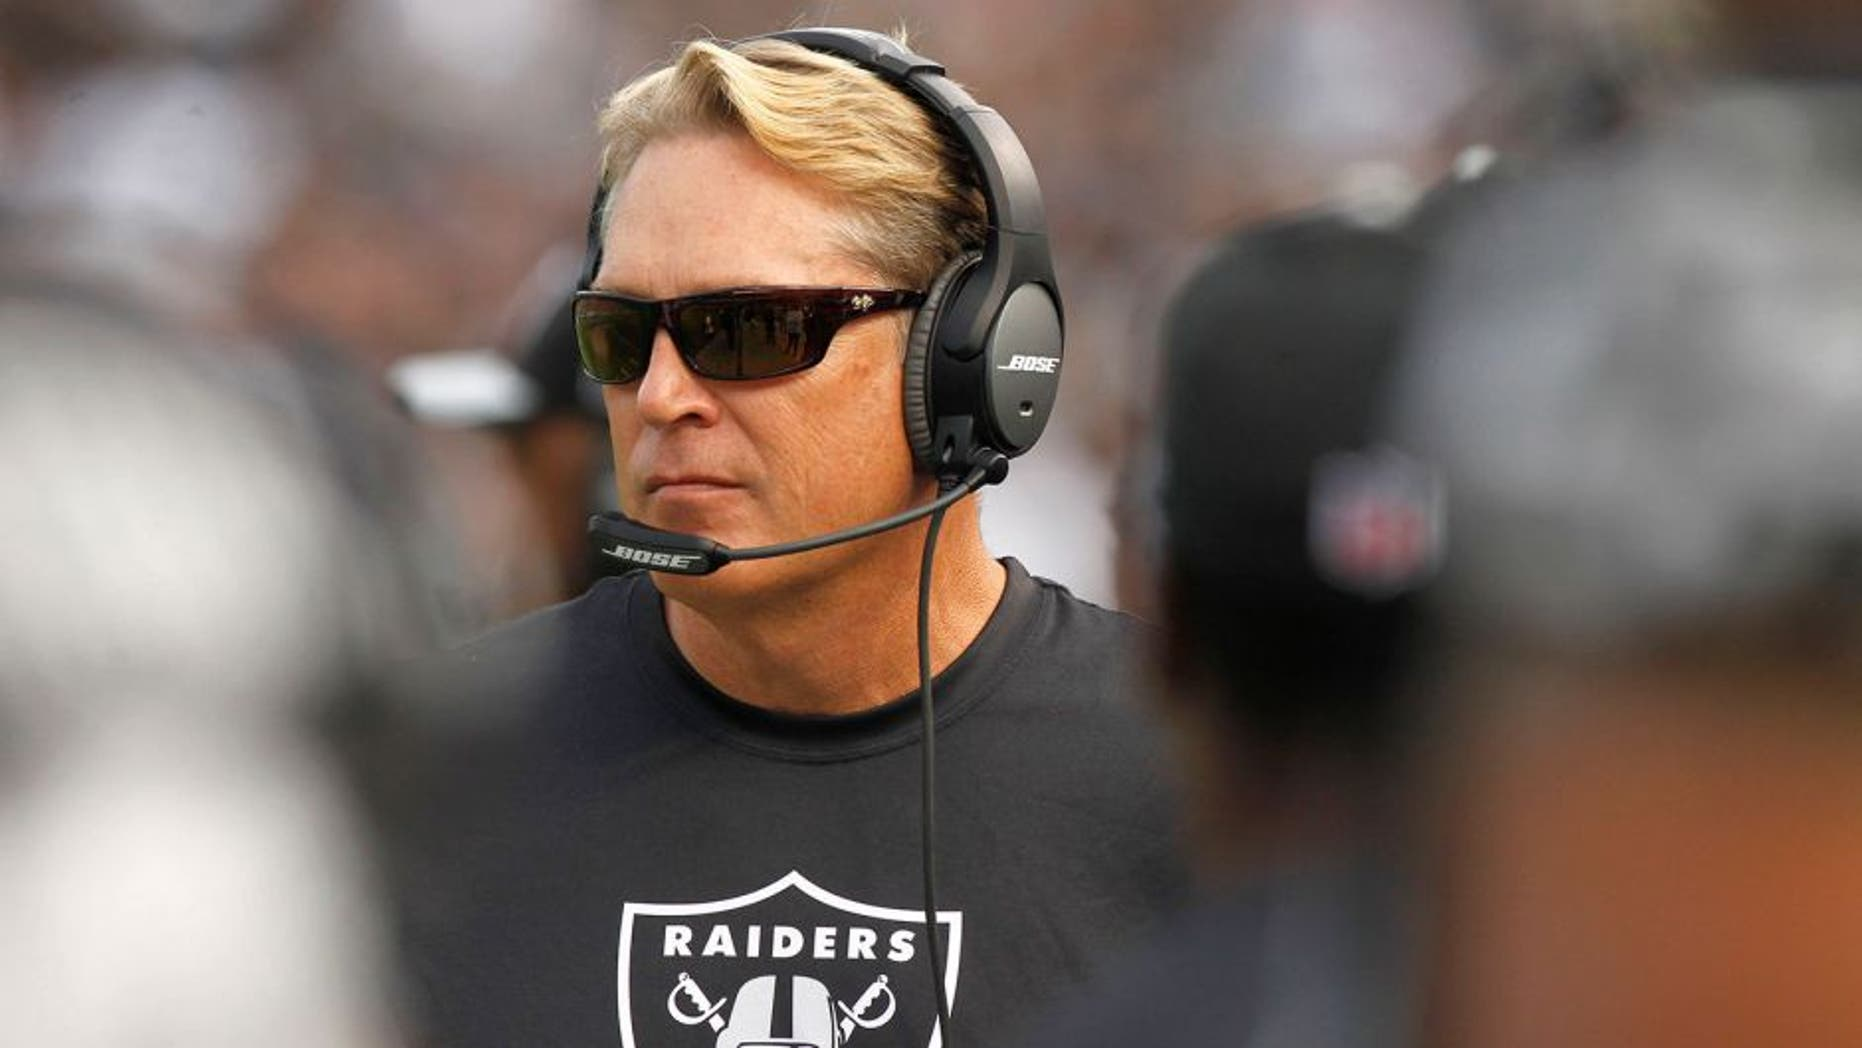 Nov 1, 2015; Oakland, CA, USA; Oakland Raiders head coach Jack Del Rio walks down the sideline during action against the New York Jets in the fourth quarter at O.co Coliseum. The Raiders defeated the Jets 34-20. Mandatory Credit: Cary Edmondson-USA TODAY Sports